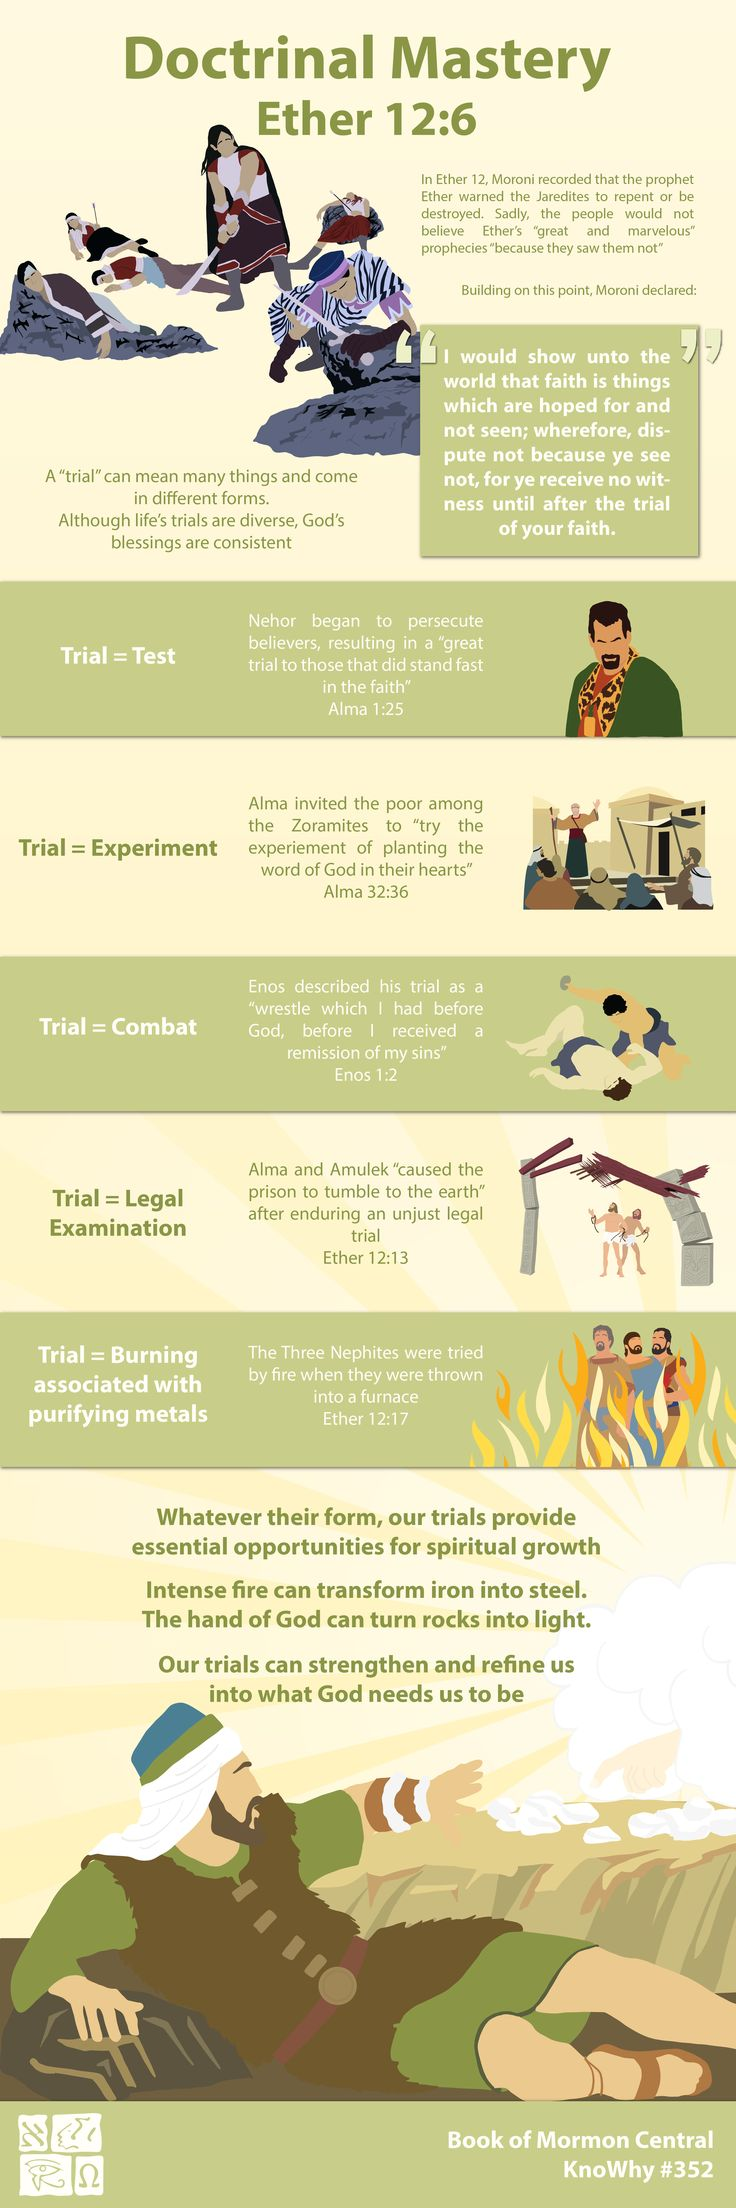 "There are several ways to define what a ""trial"" is. Several of these definitions are present in the Book of Mormon. Moroni may have thematically referenced ""trials by fire"" when recounting stories dealing with literal or metaphorical burning. And his multiple references to legal trials and imprisonment offer powerful examples.https://knowhy.bookofmormoncentral.org/content/how-can-trials-of-faith-lead-to-spiritual-growth"